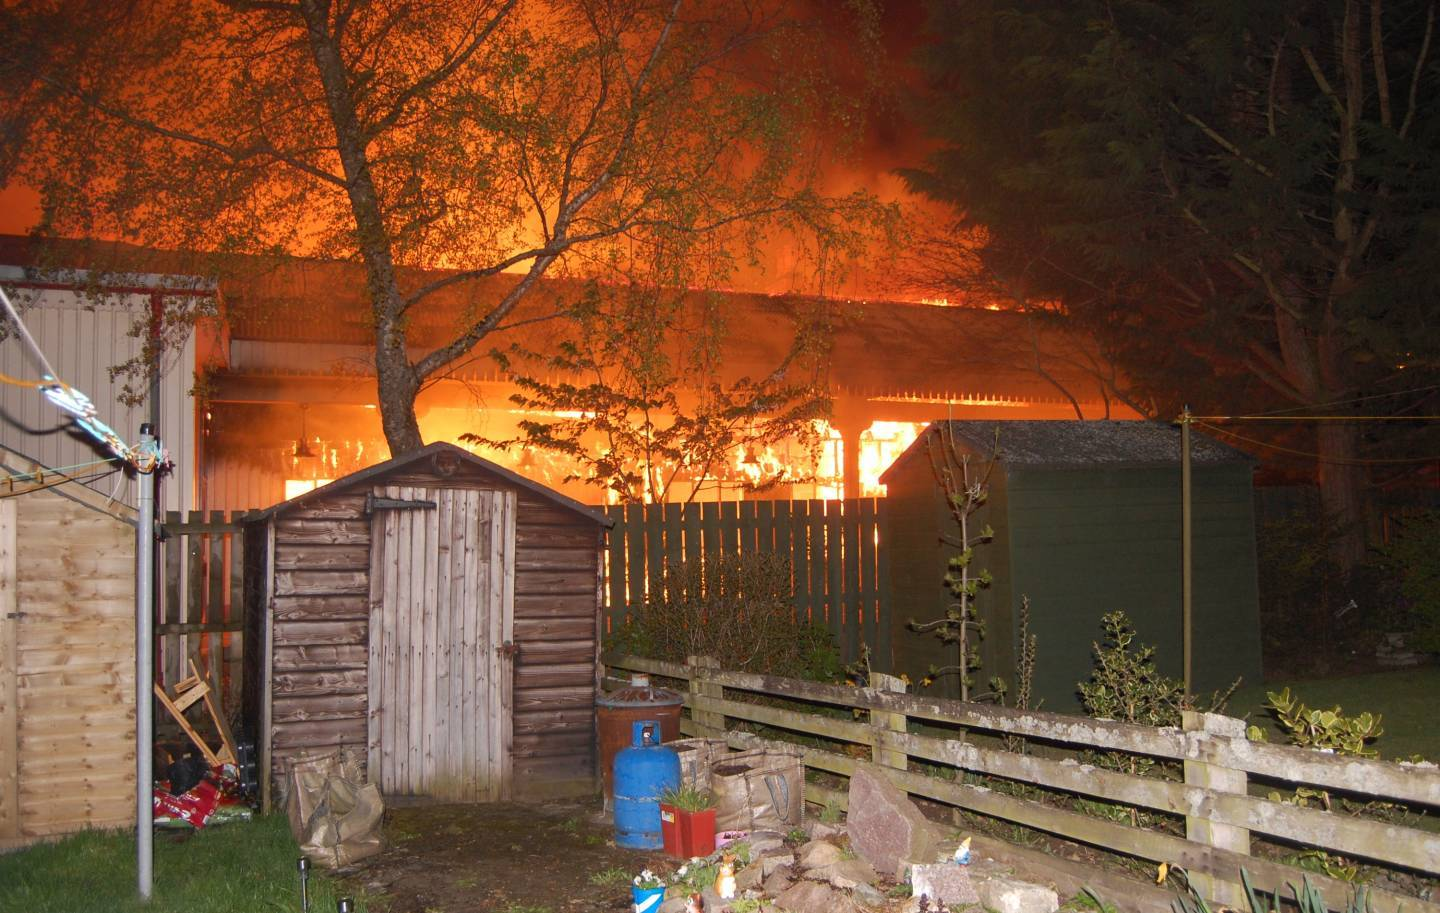 The fire in Ballater. Picture by reader Terry Gauld.